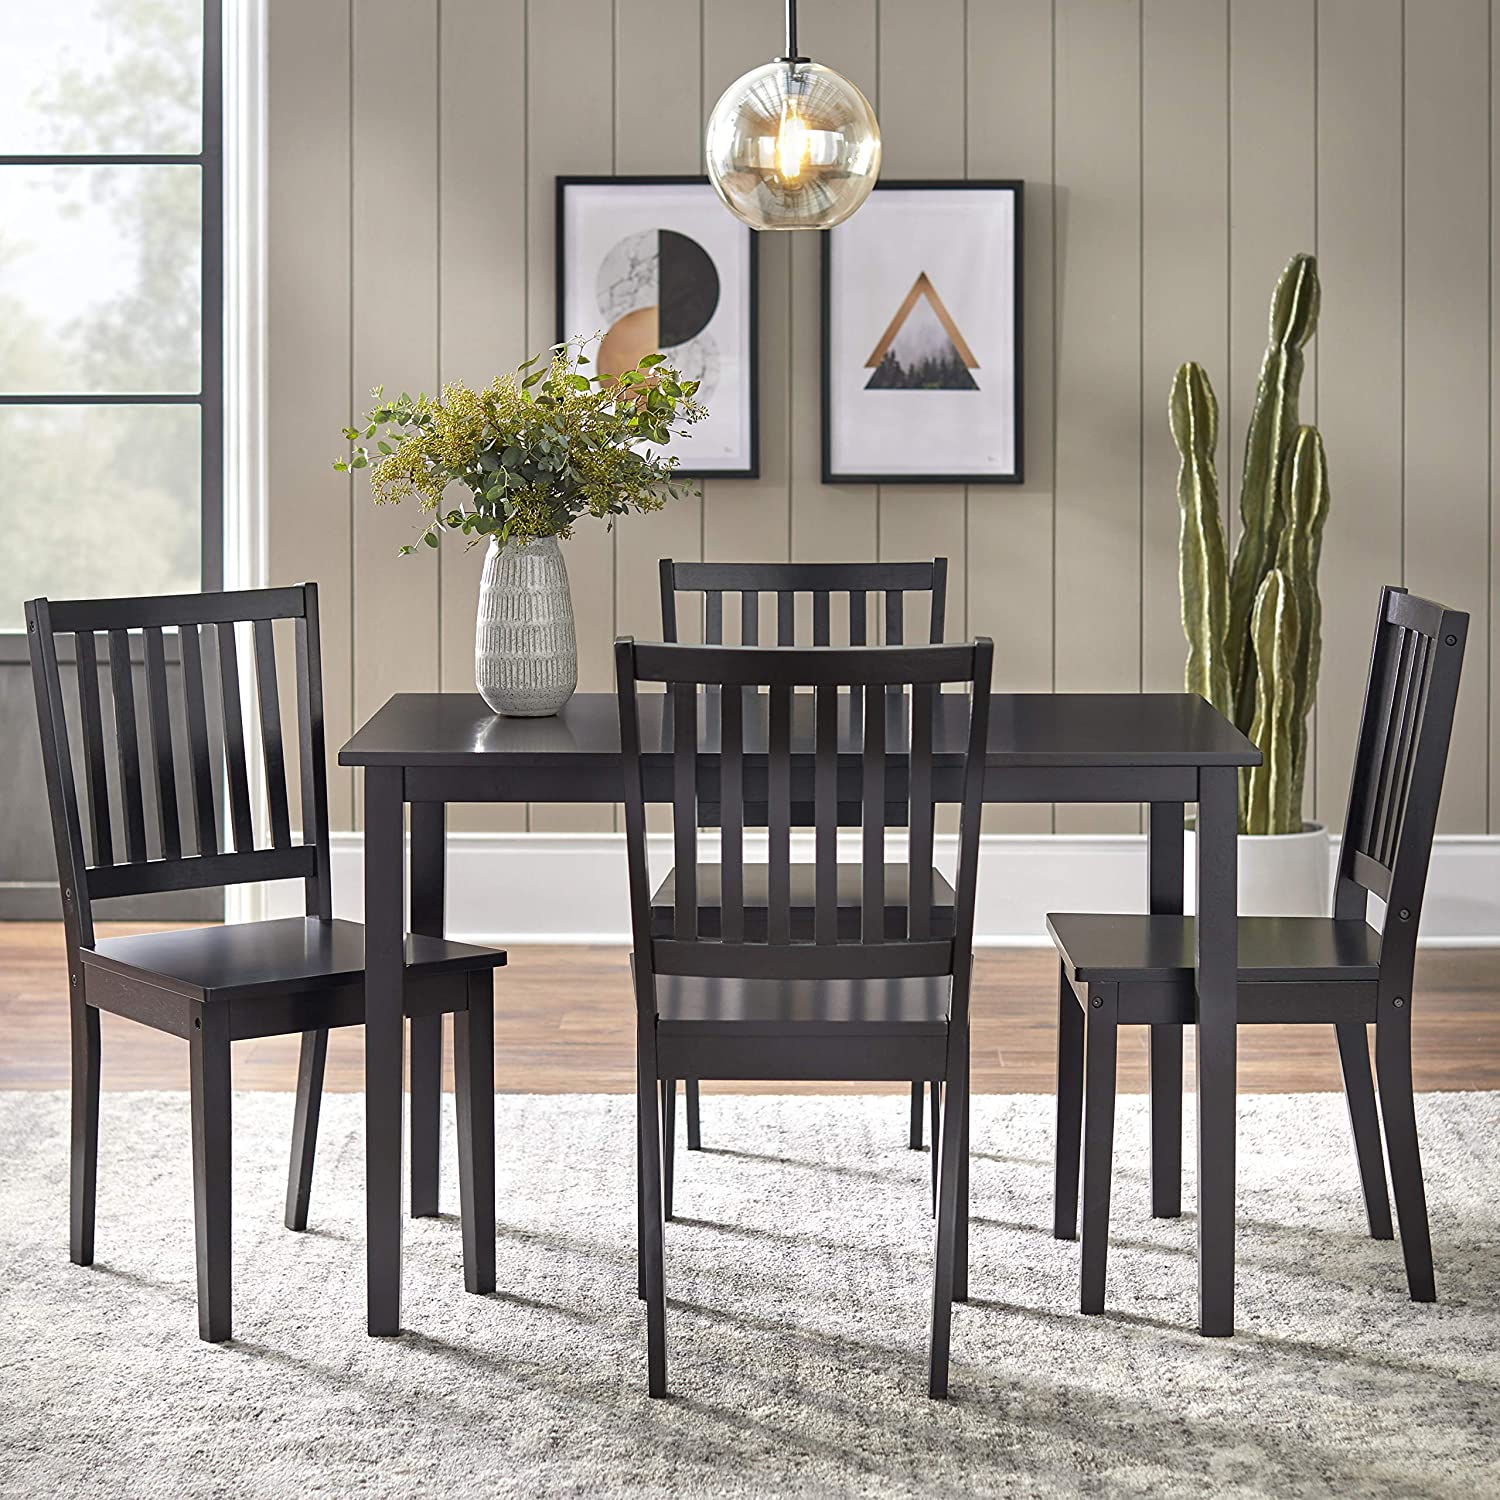 Buy Target Marketing Systems 9 Piece Shaker Dining Set with 9 Slat ...